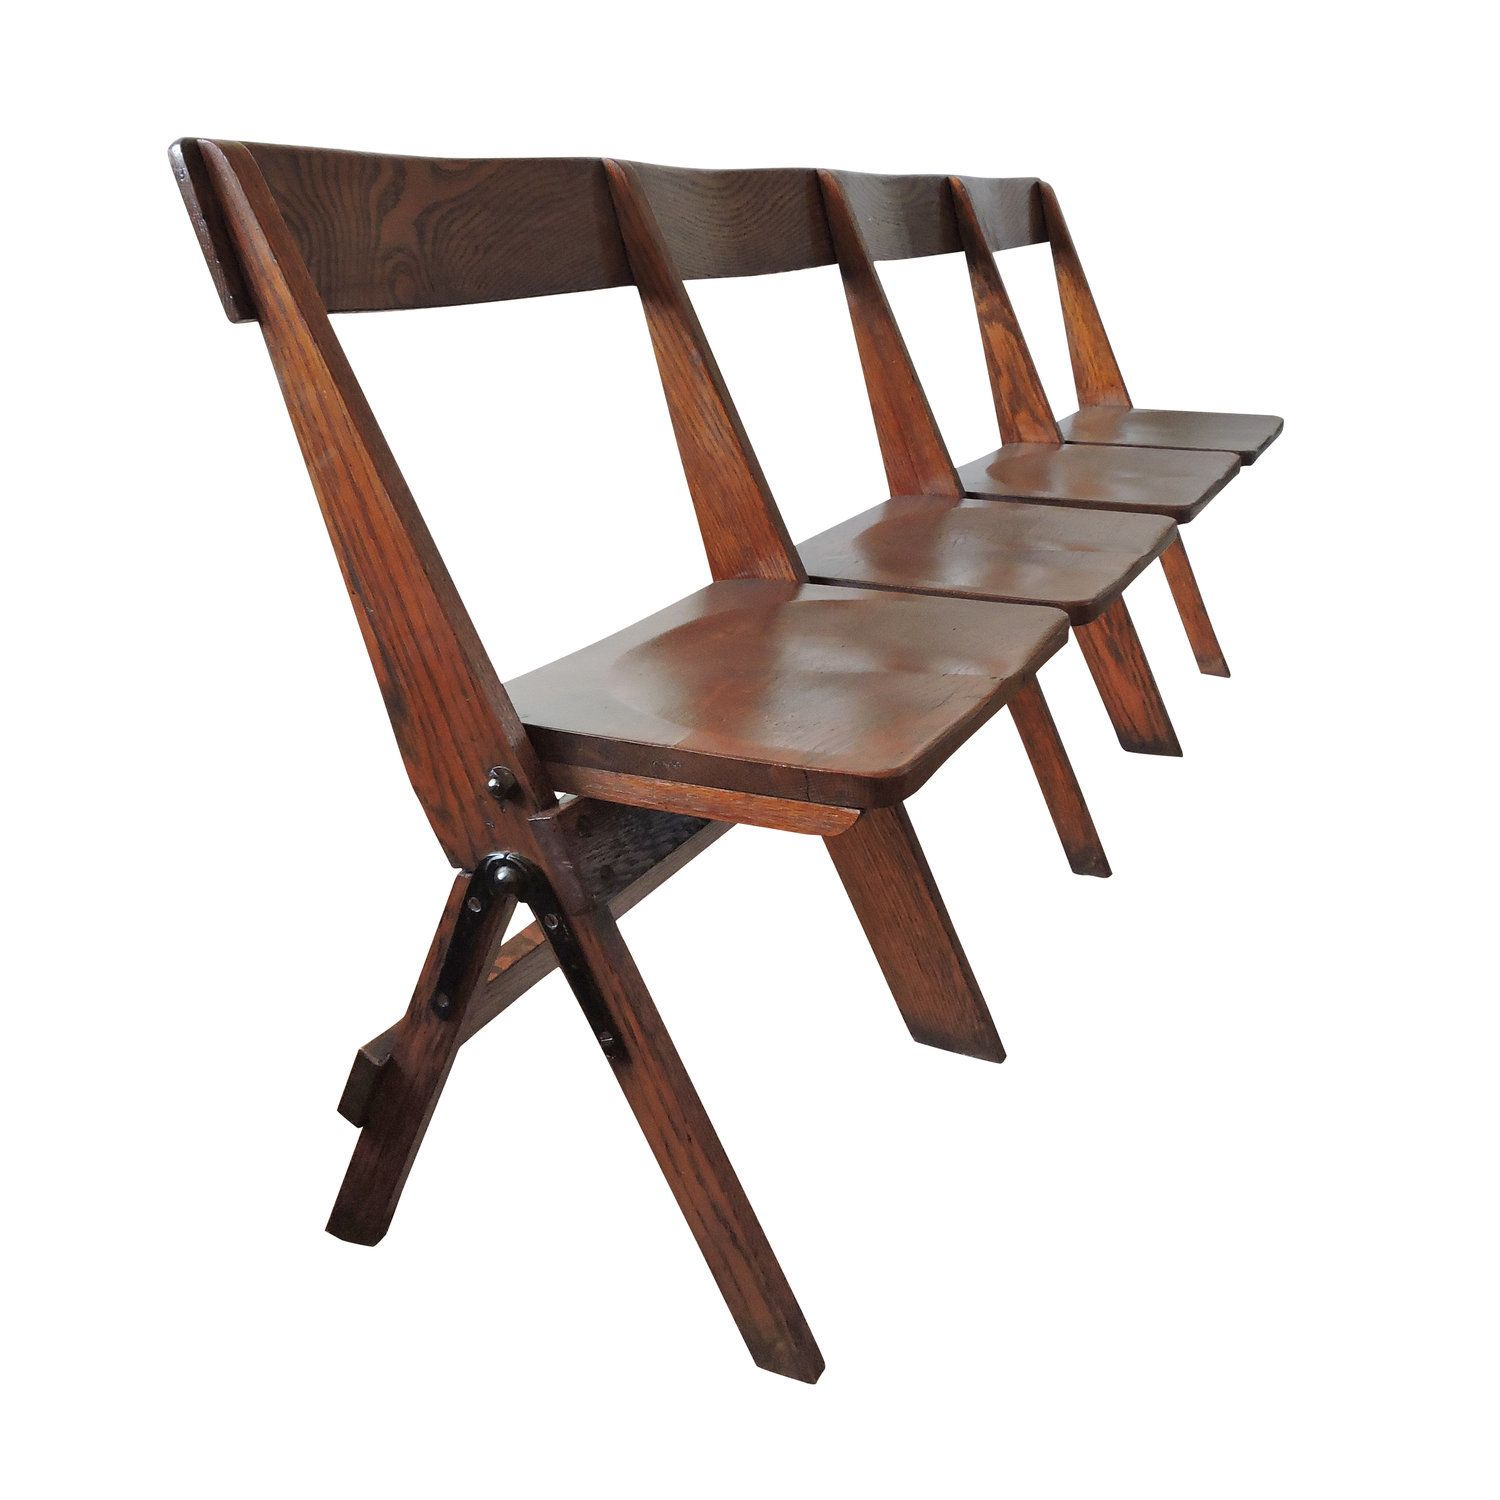 Terrassenmöbel Ausverkauf Vintage Conjoined Folding Chapel Chairs 1920s In 2019